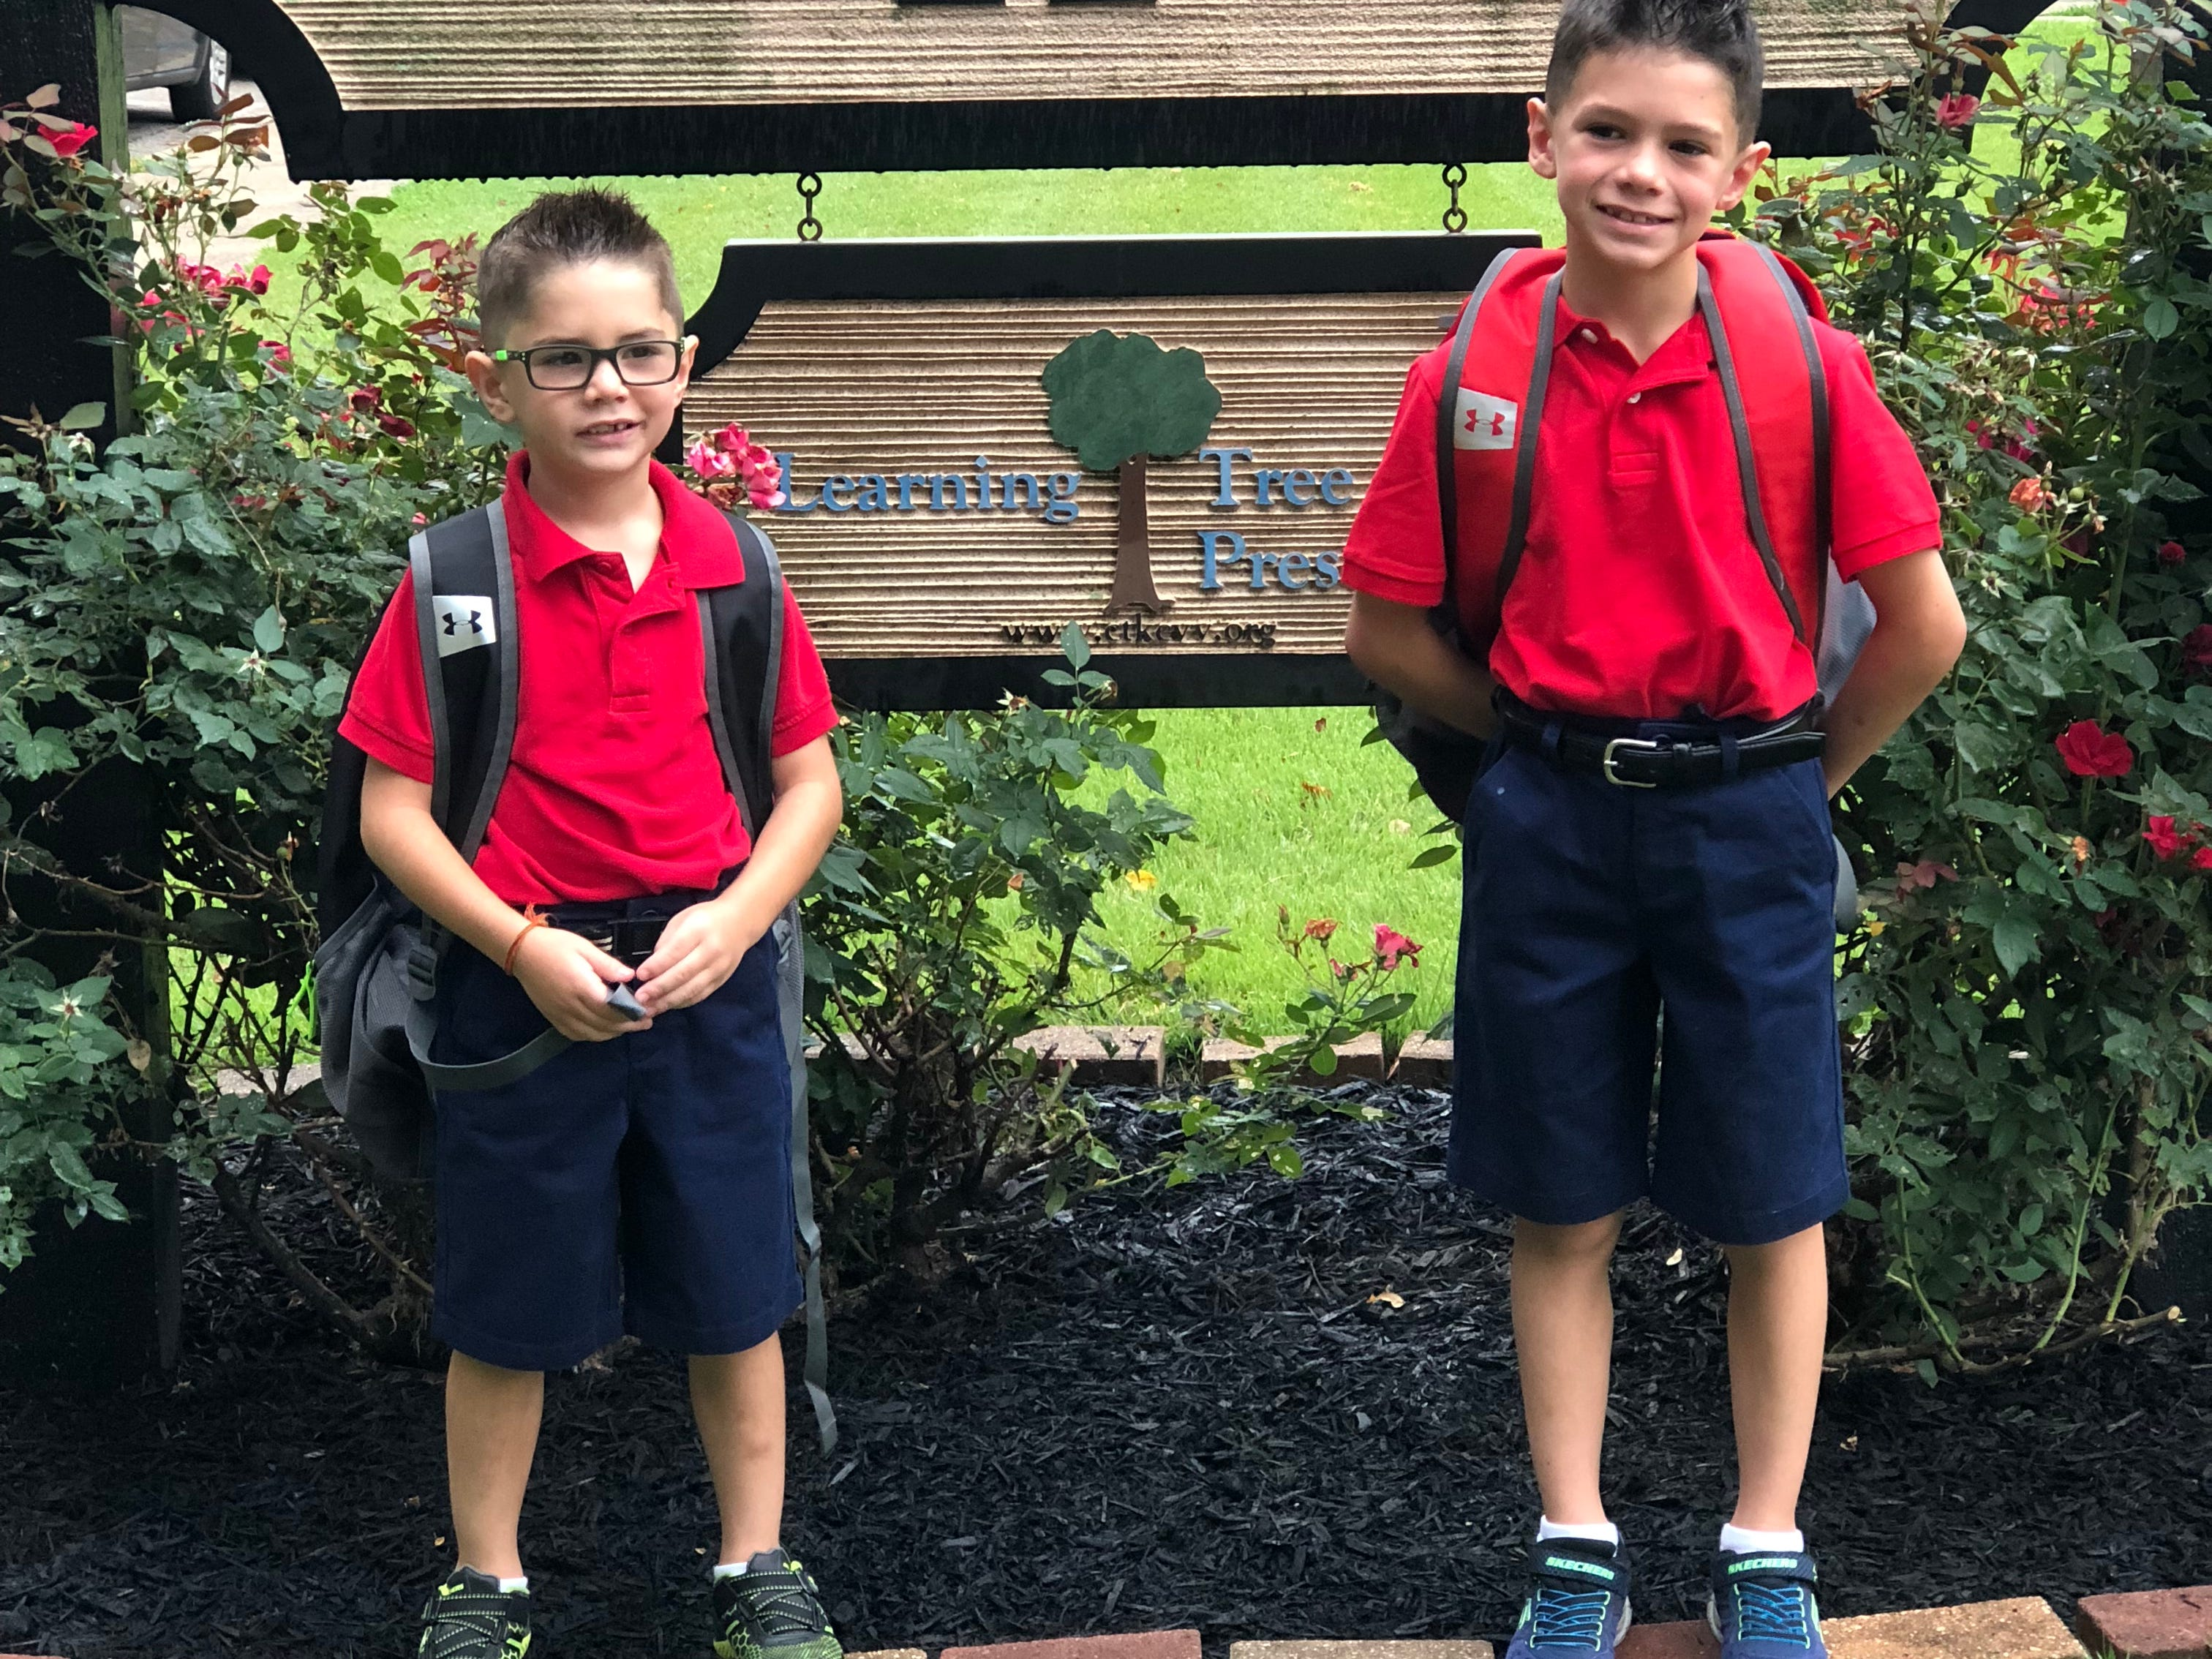 From left to right - Brothers Aidan Gray - 1st Grade and Aaron Gray - 2nd Grade @ Annunciation Catholic School at Christ The King